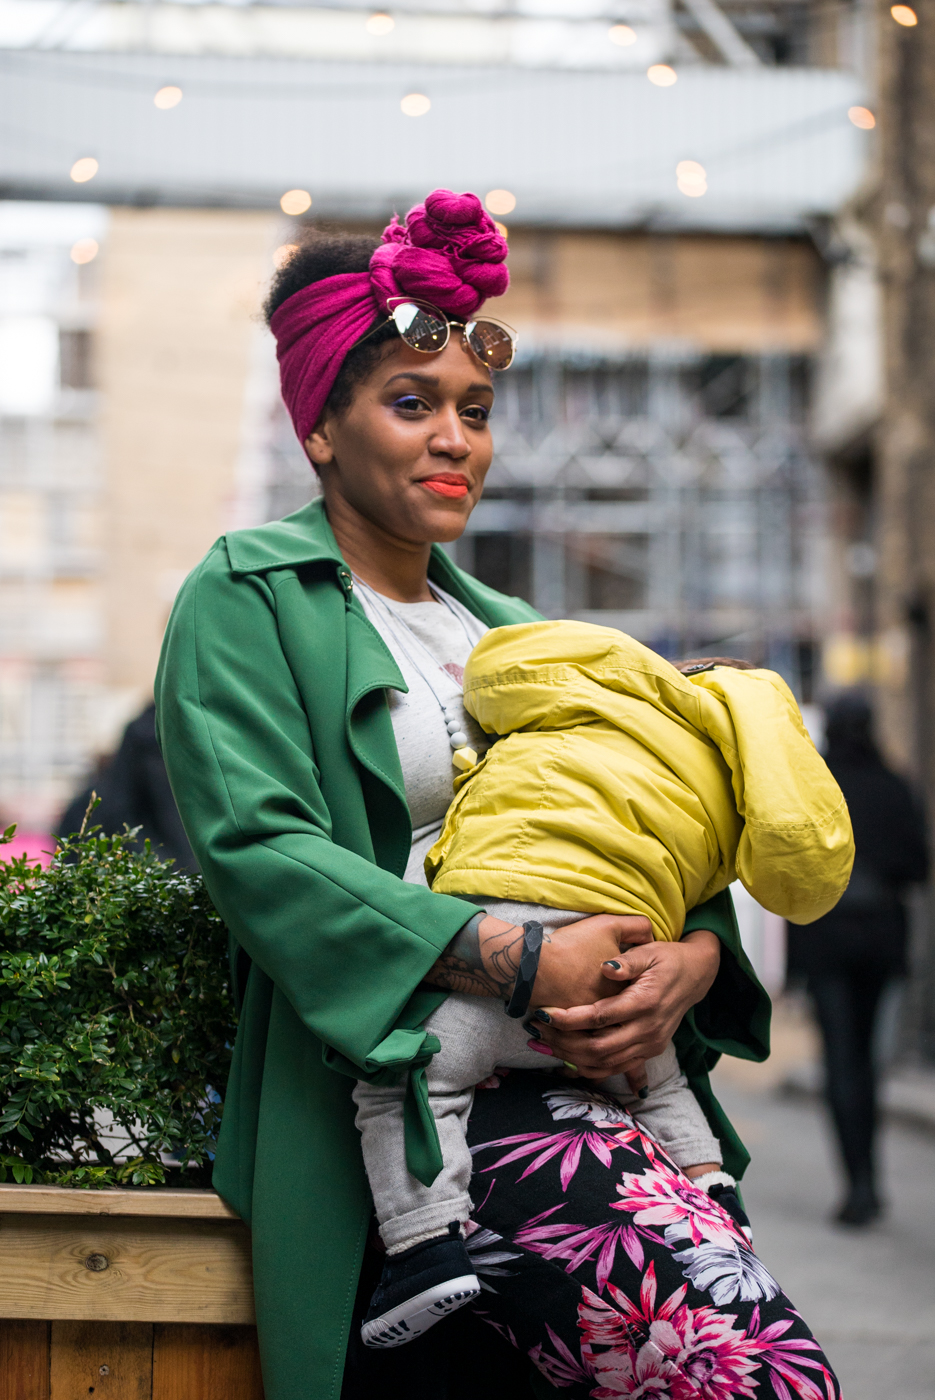 Cleo Walters of Mumma and the Bears: I blog about Motherhood, My life, Travel, Shopping and Interiors. I champion NORMALIZING breastfeeding and supporting small businesses.    connect with cleo:    on the web    +    instagram    +    facebook